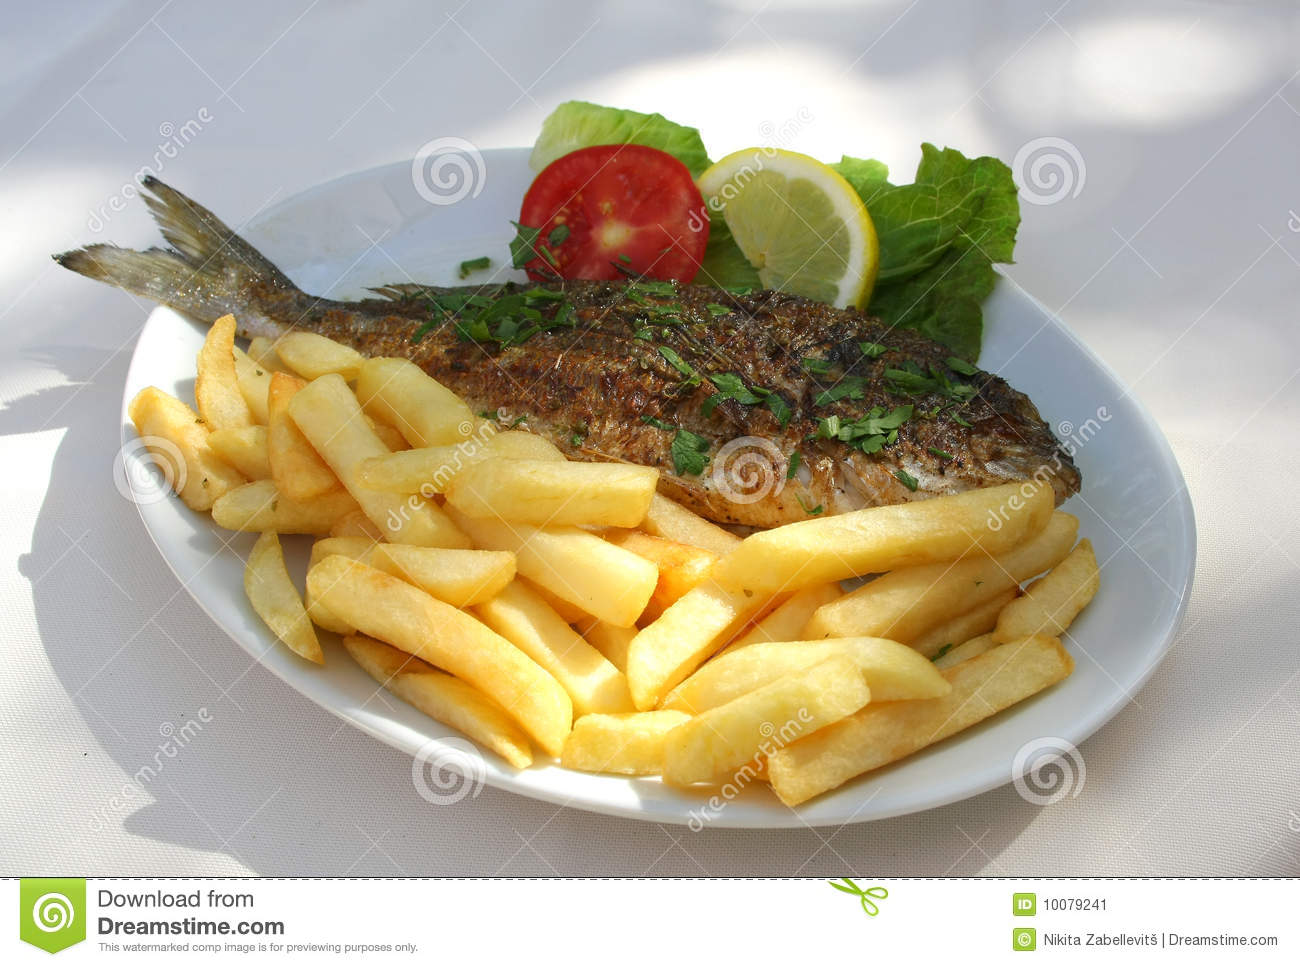 Grilled fish on the plate